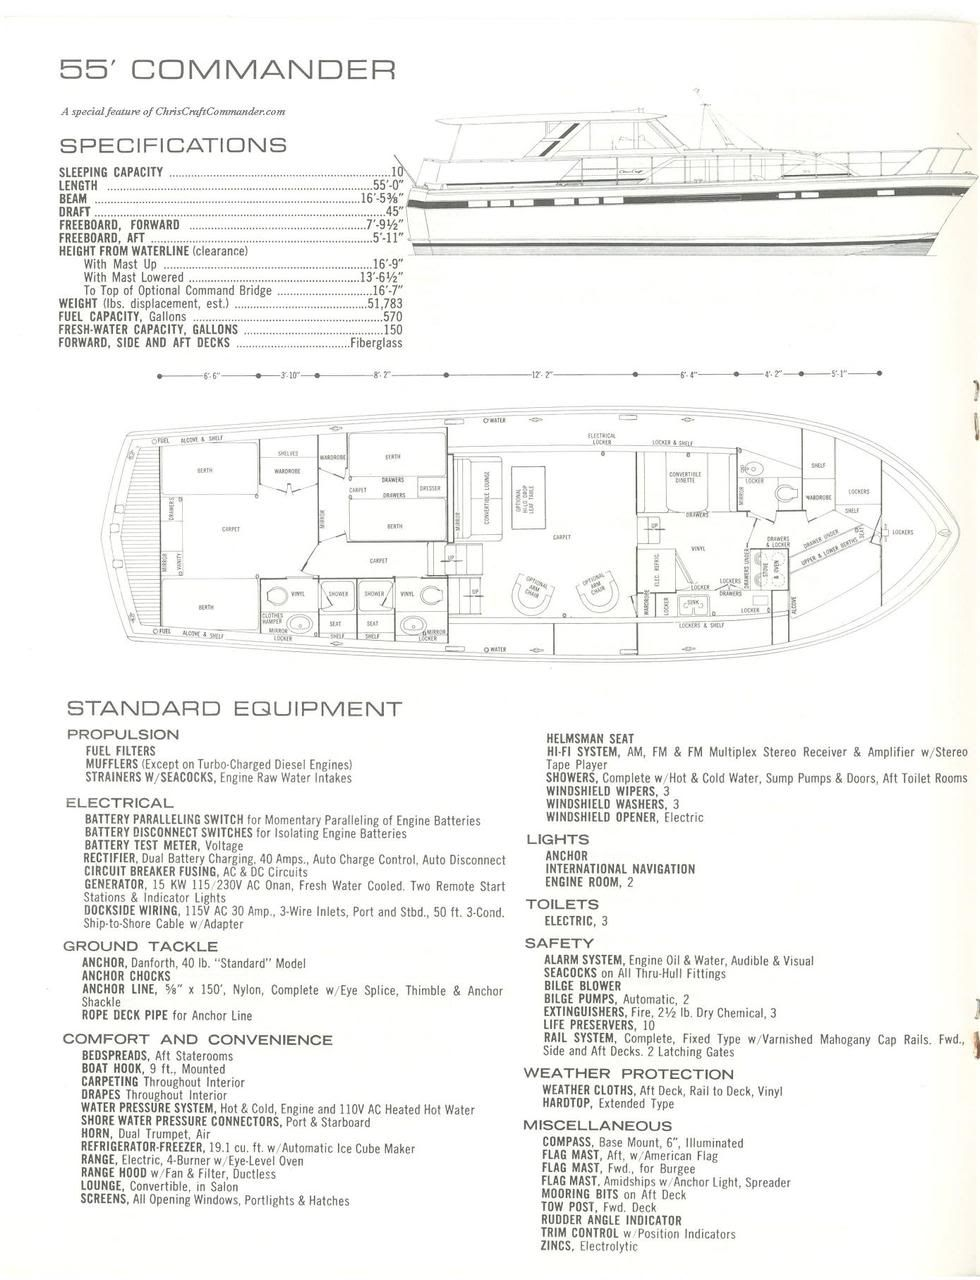 chris products wiring diagram chris database wiring diagram chris wiring diagram chris home wiring diagrams